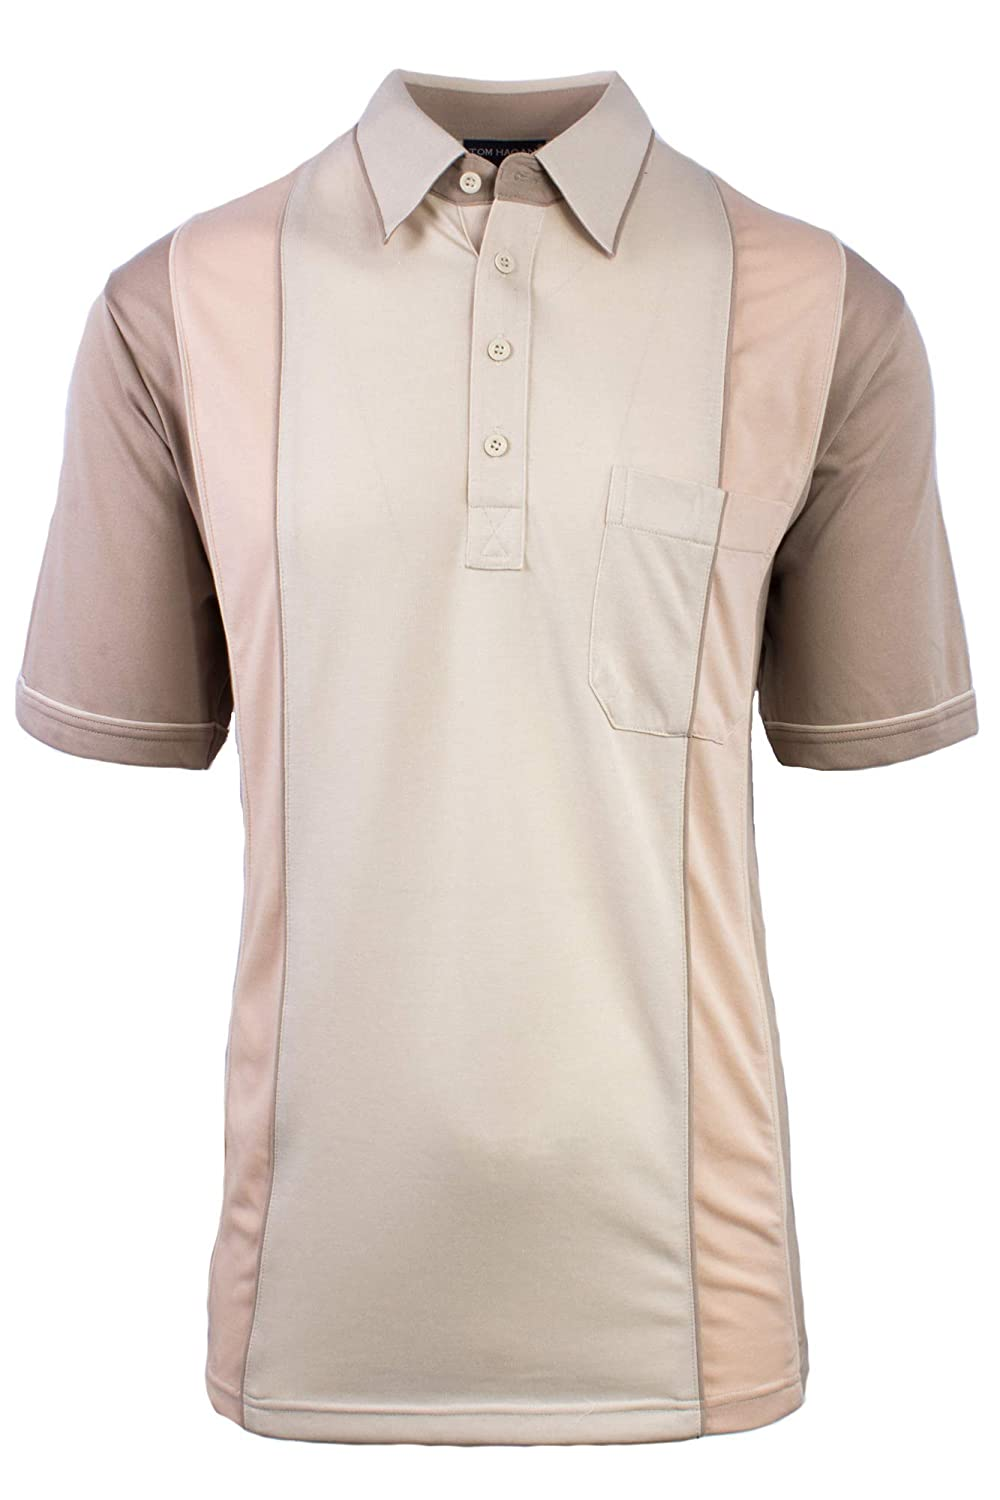 Fenside Country Clothing - Polo - para Hombre  Amazon.es  Ropa y accesorios bb8a5b6ecb9